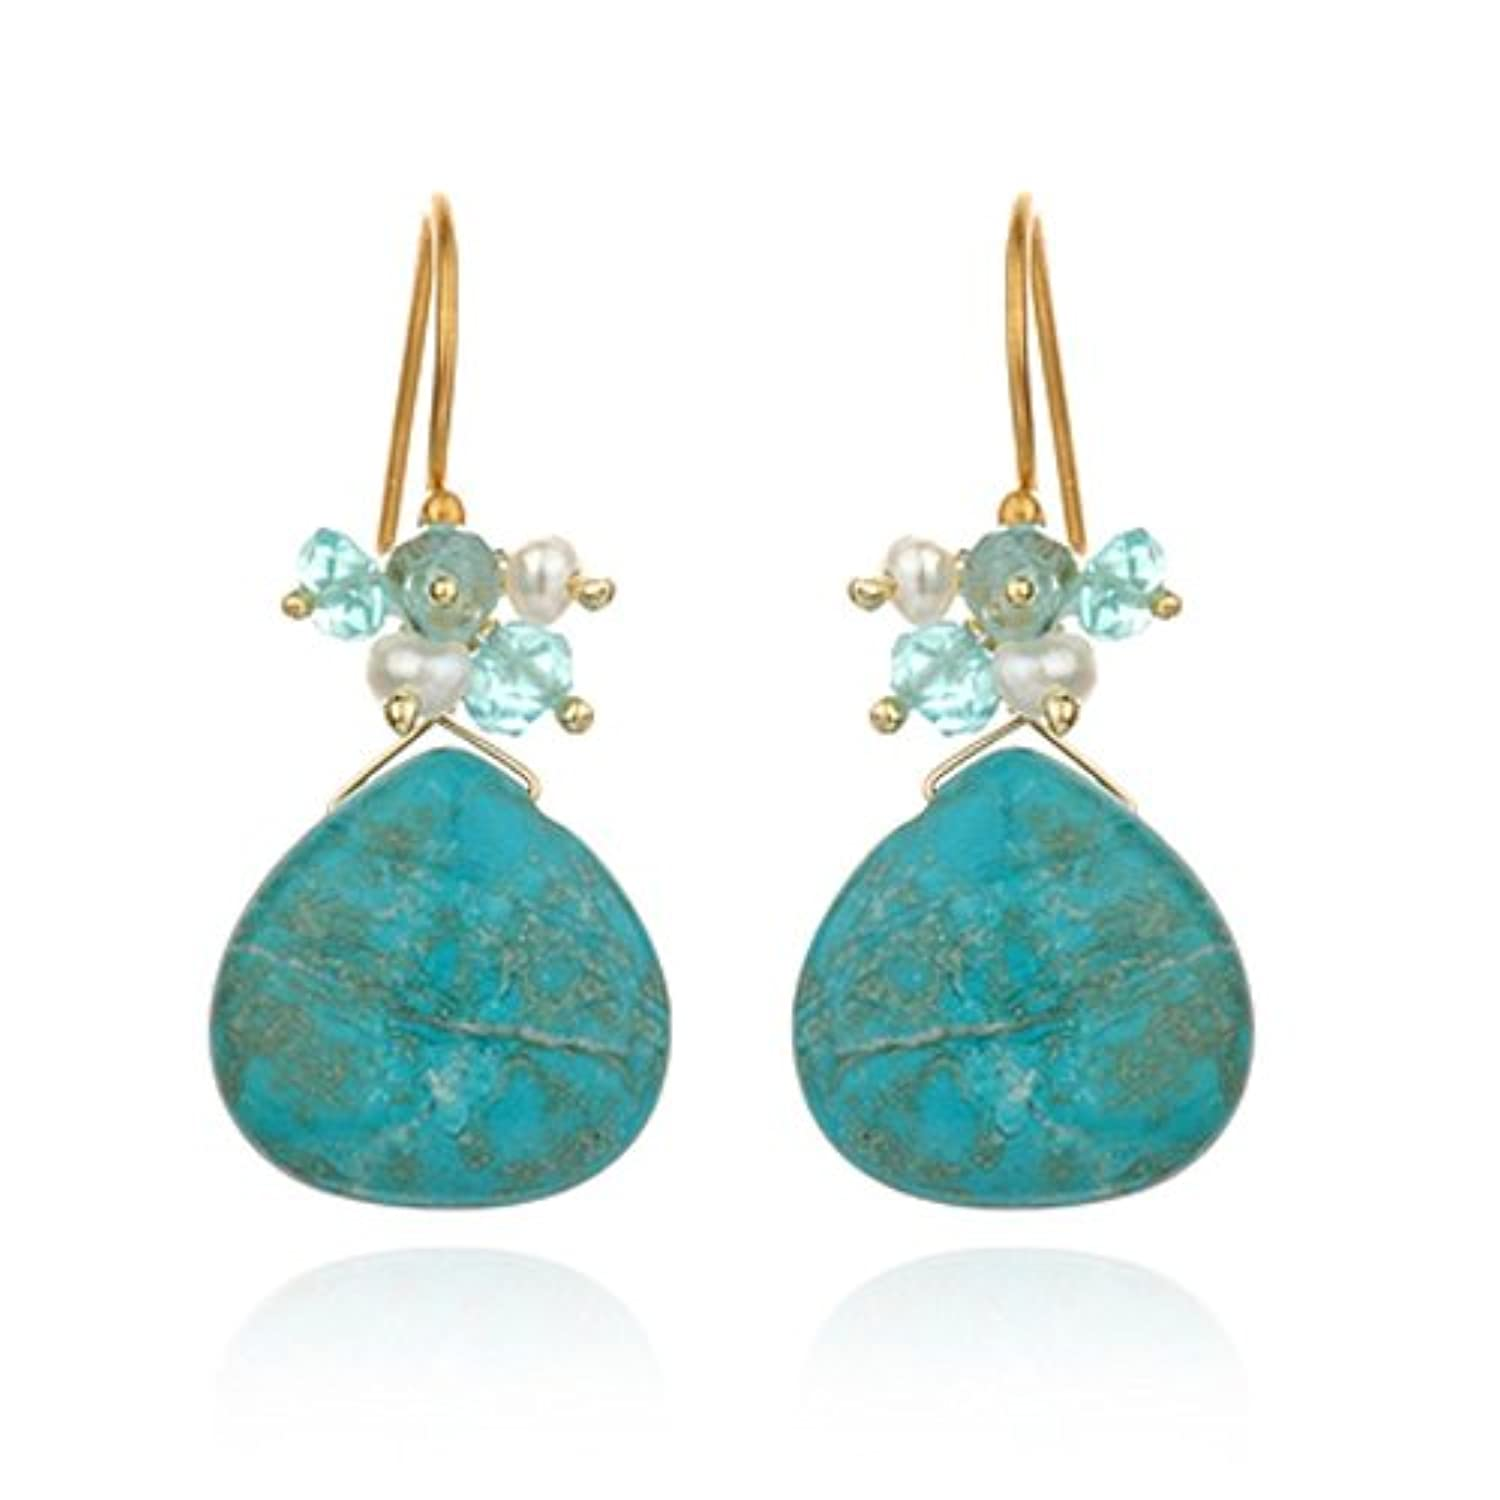 Satya Jewelry - Captivation Earring with Turquoise Drop Multi Stone Accent